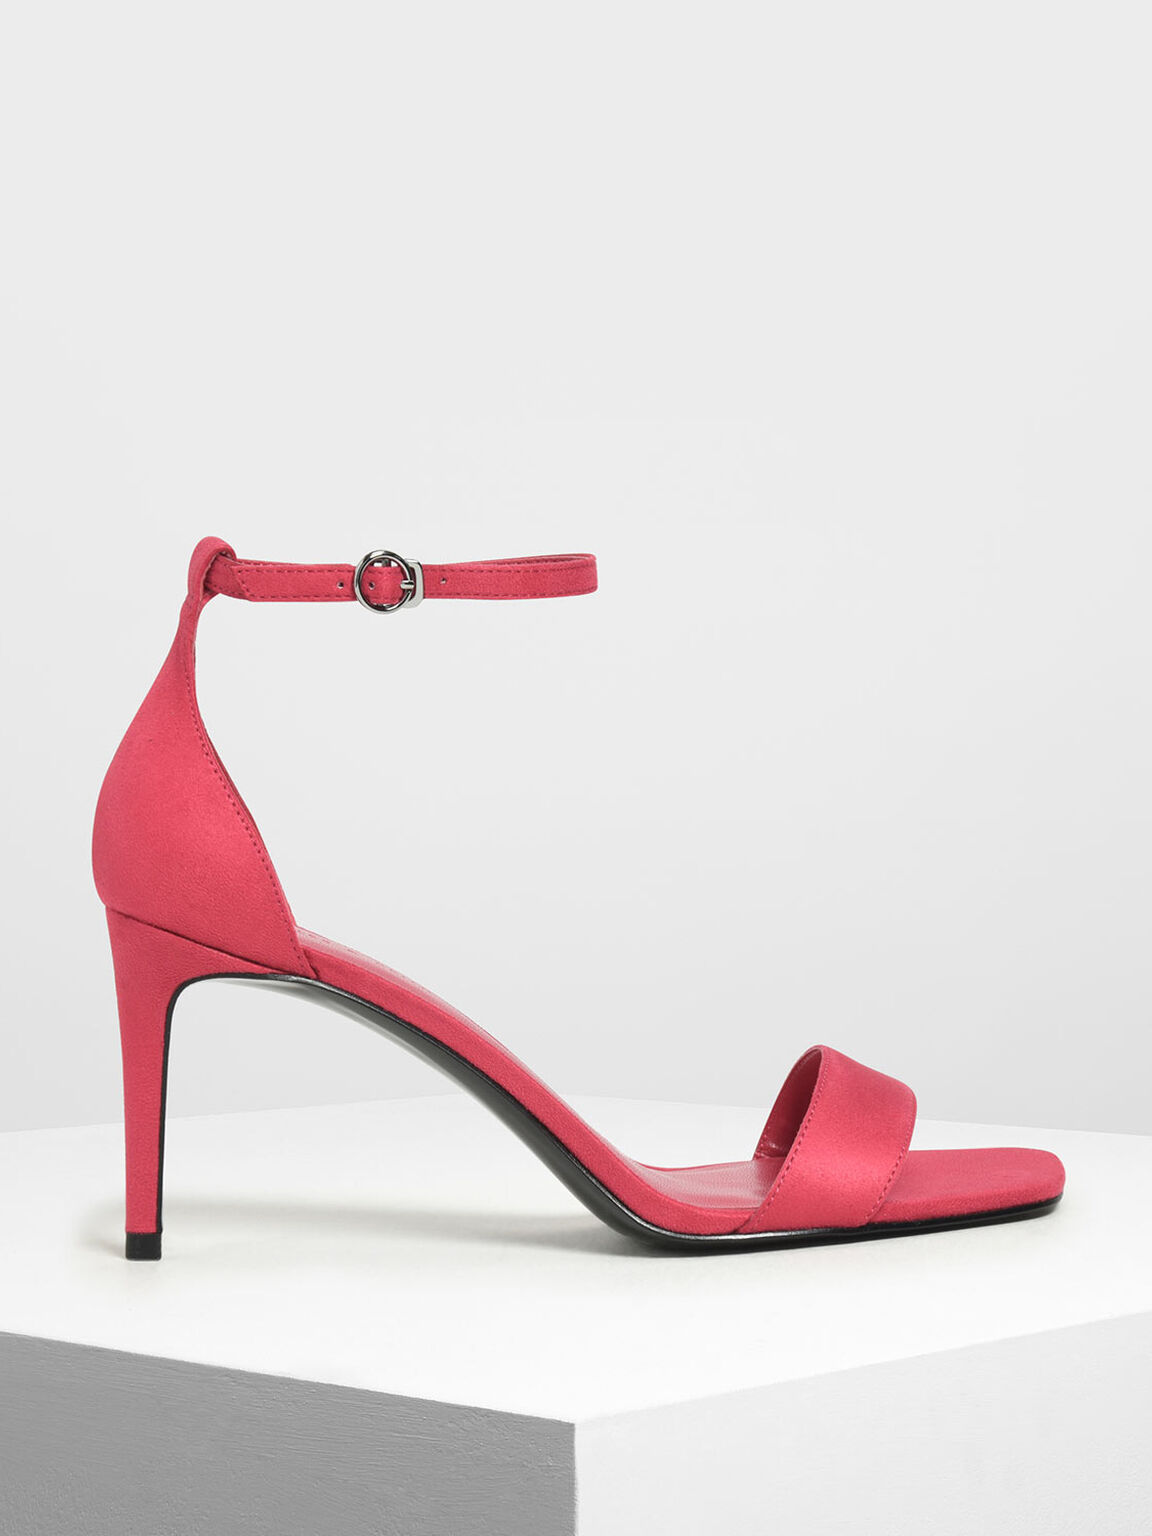 Classic Ankle Strap Heels, Red, hi-res